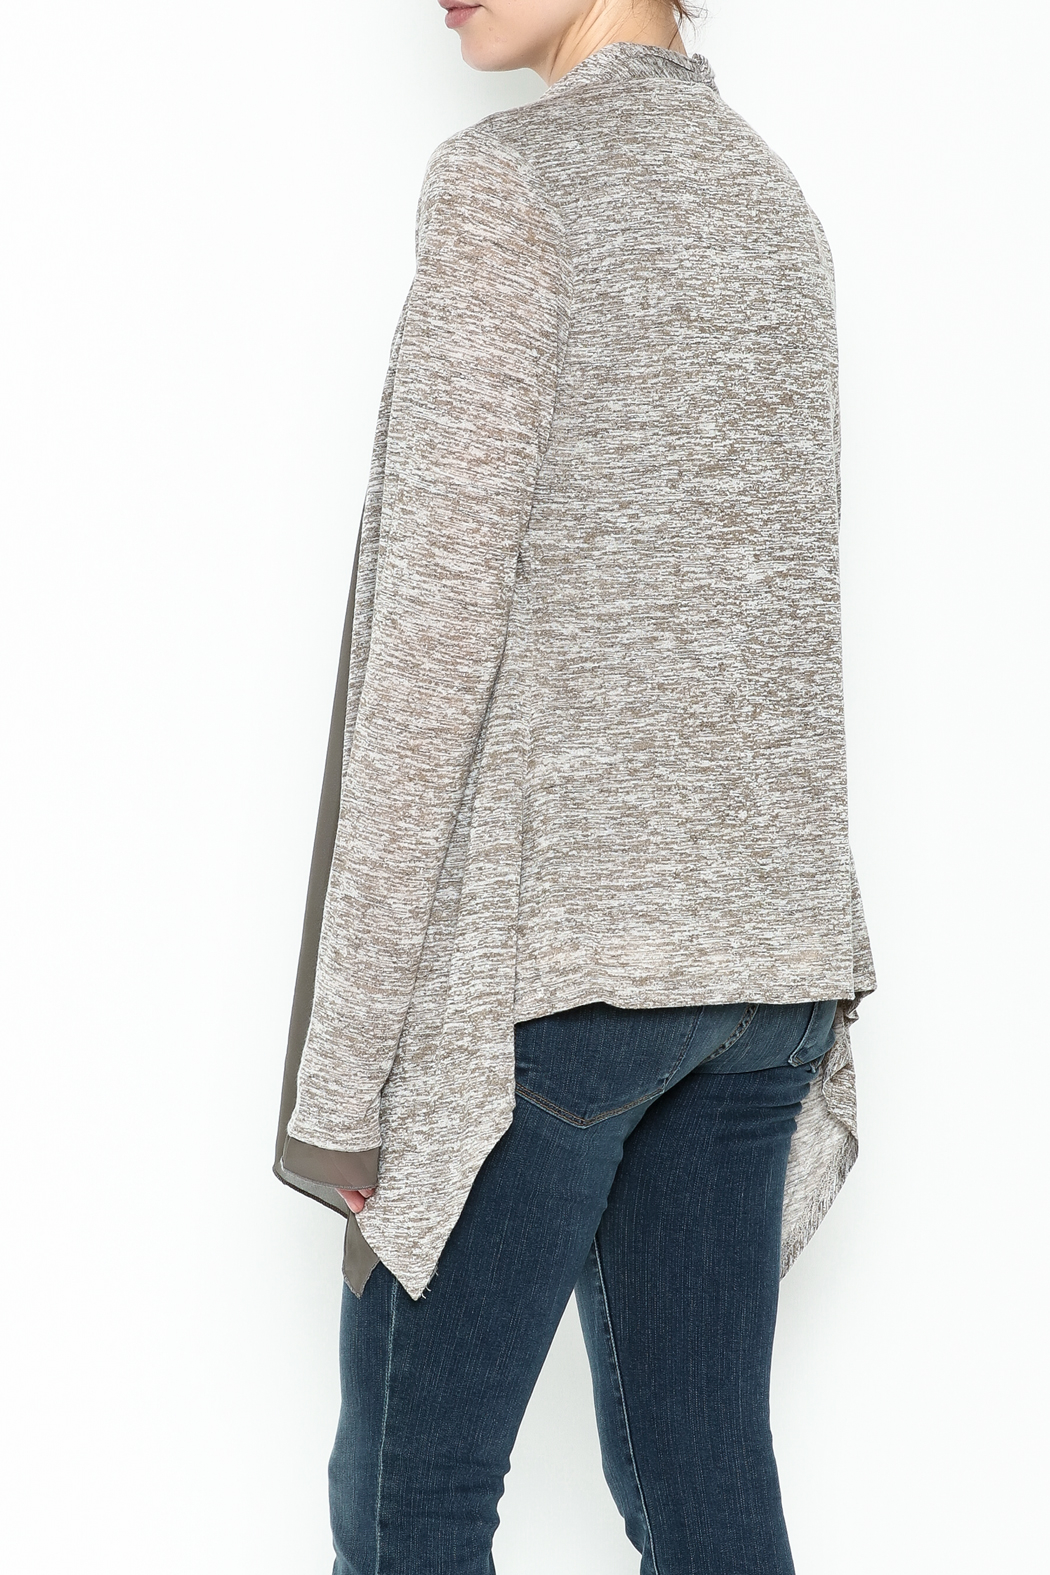 Coco + Carmen Double Layer Cardigan - Back Cropped Image